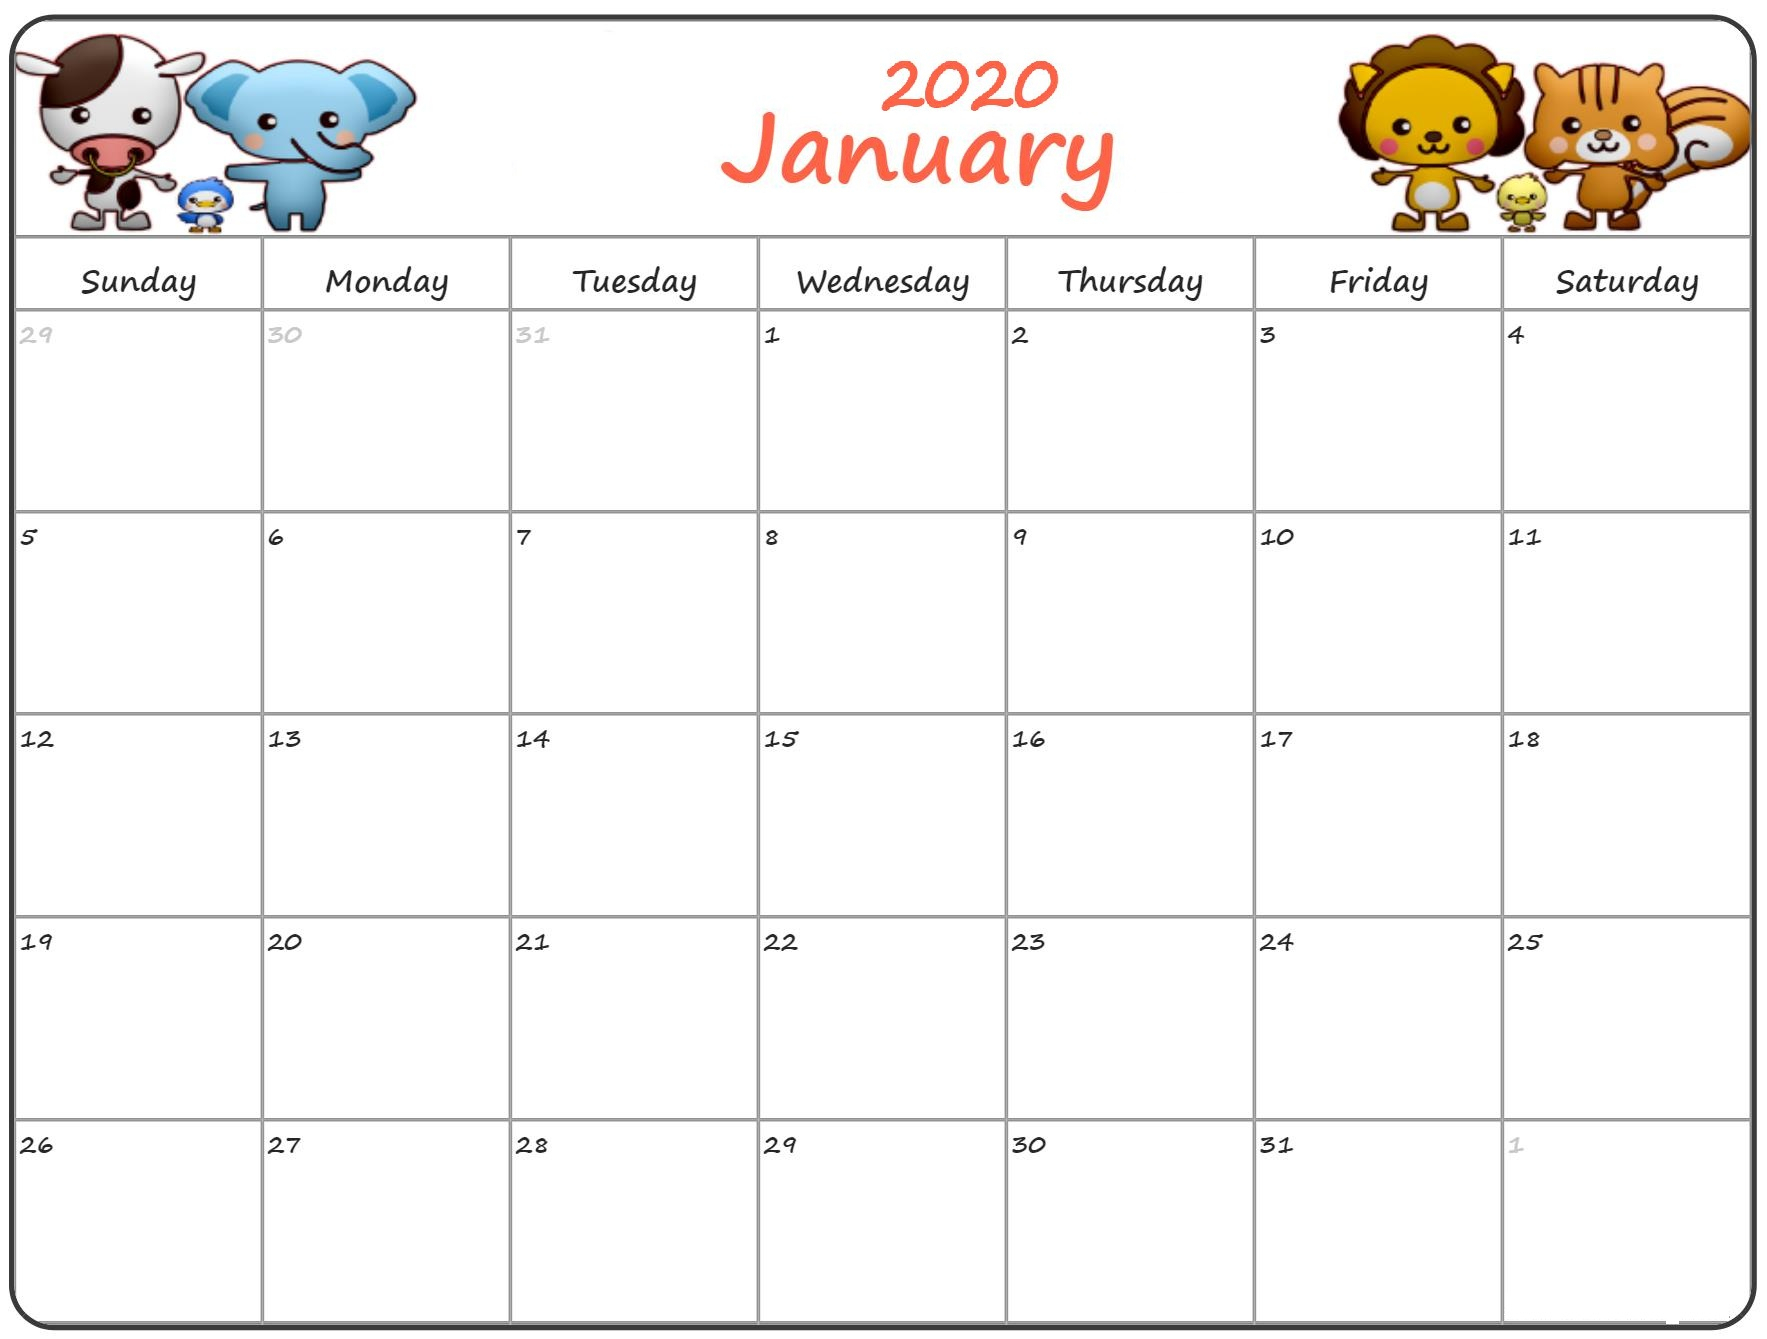 Calendar For January 2020 – Project Schedule Planning | Free